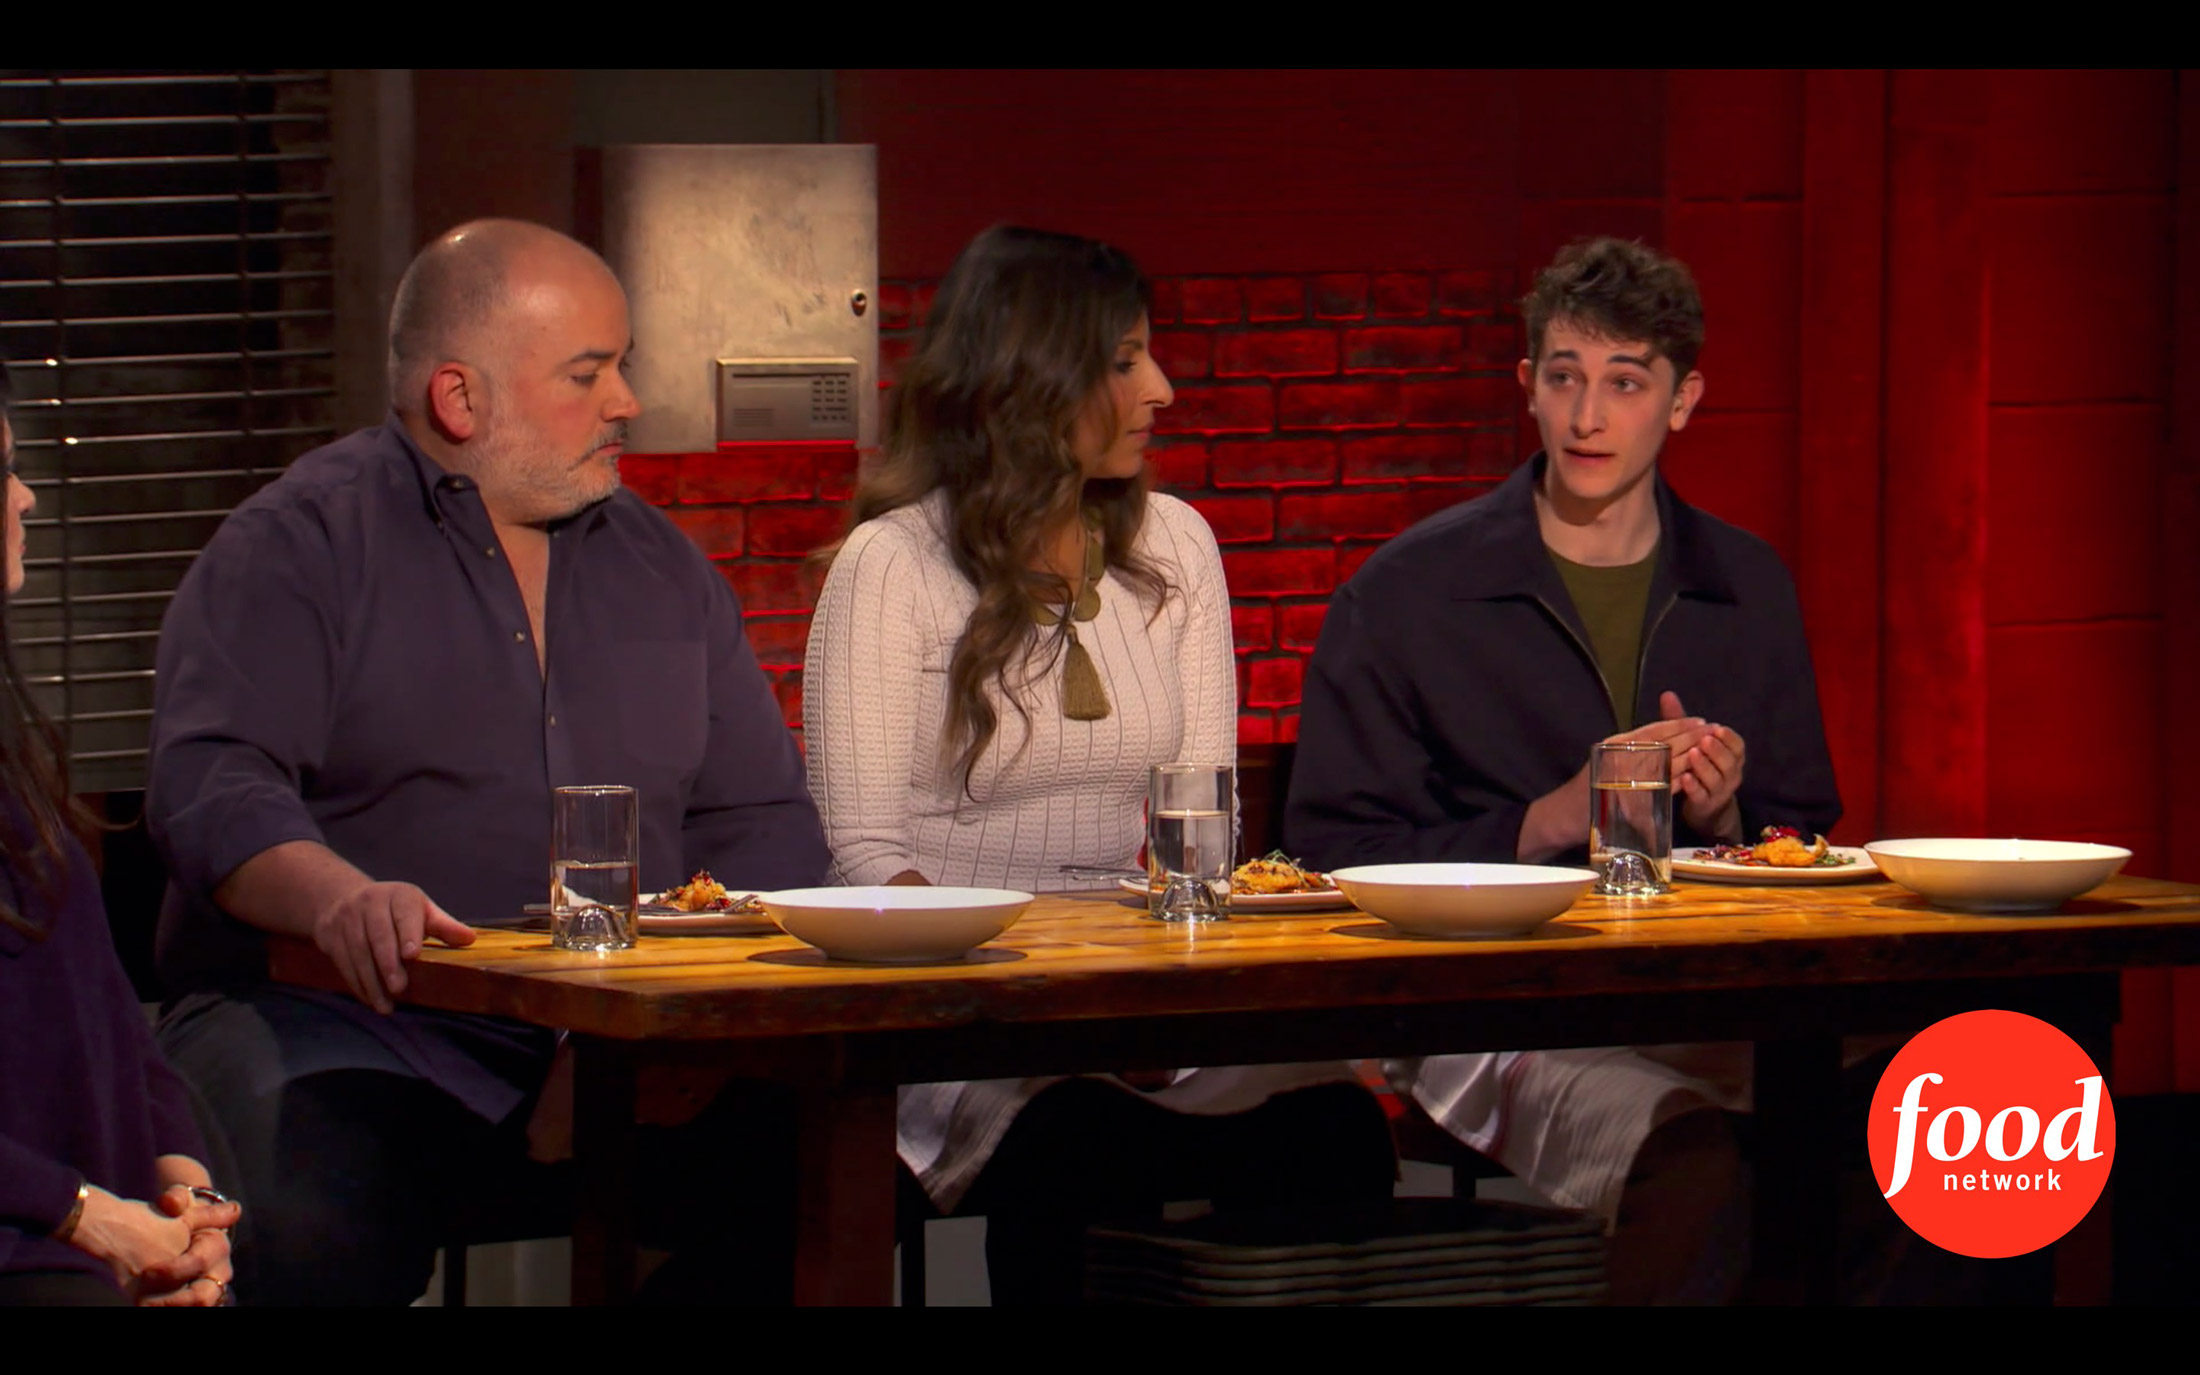 Jonah on a Food Network show, sitting alongside two others, each with a plate of food in front of them.